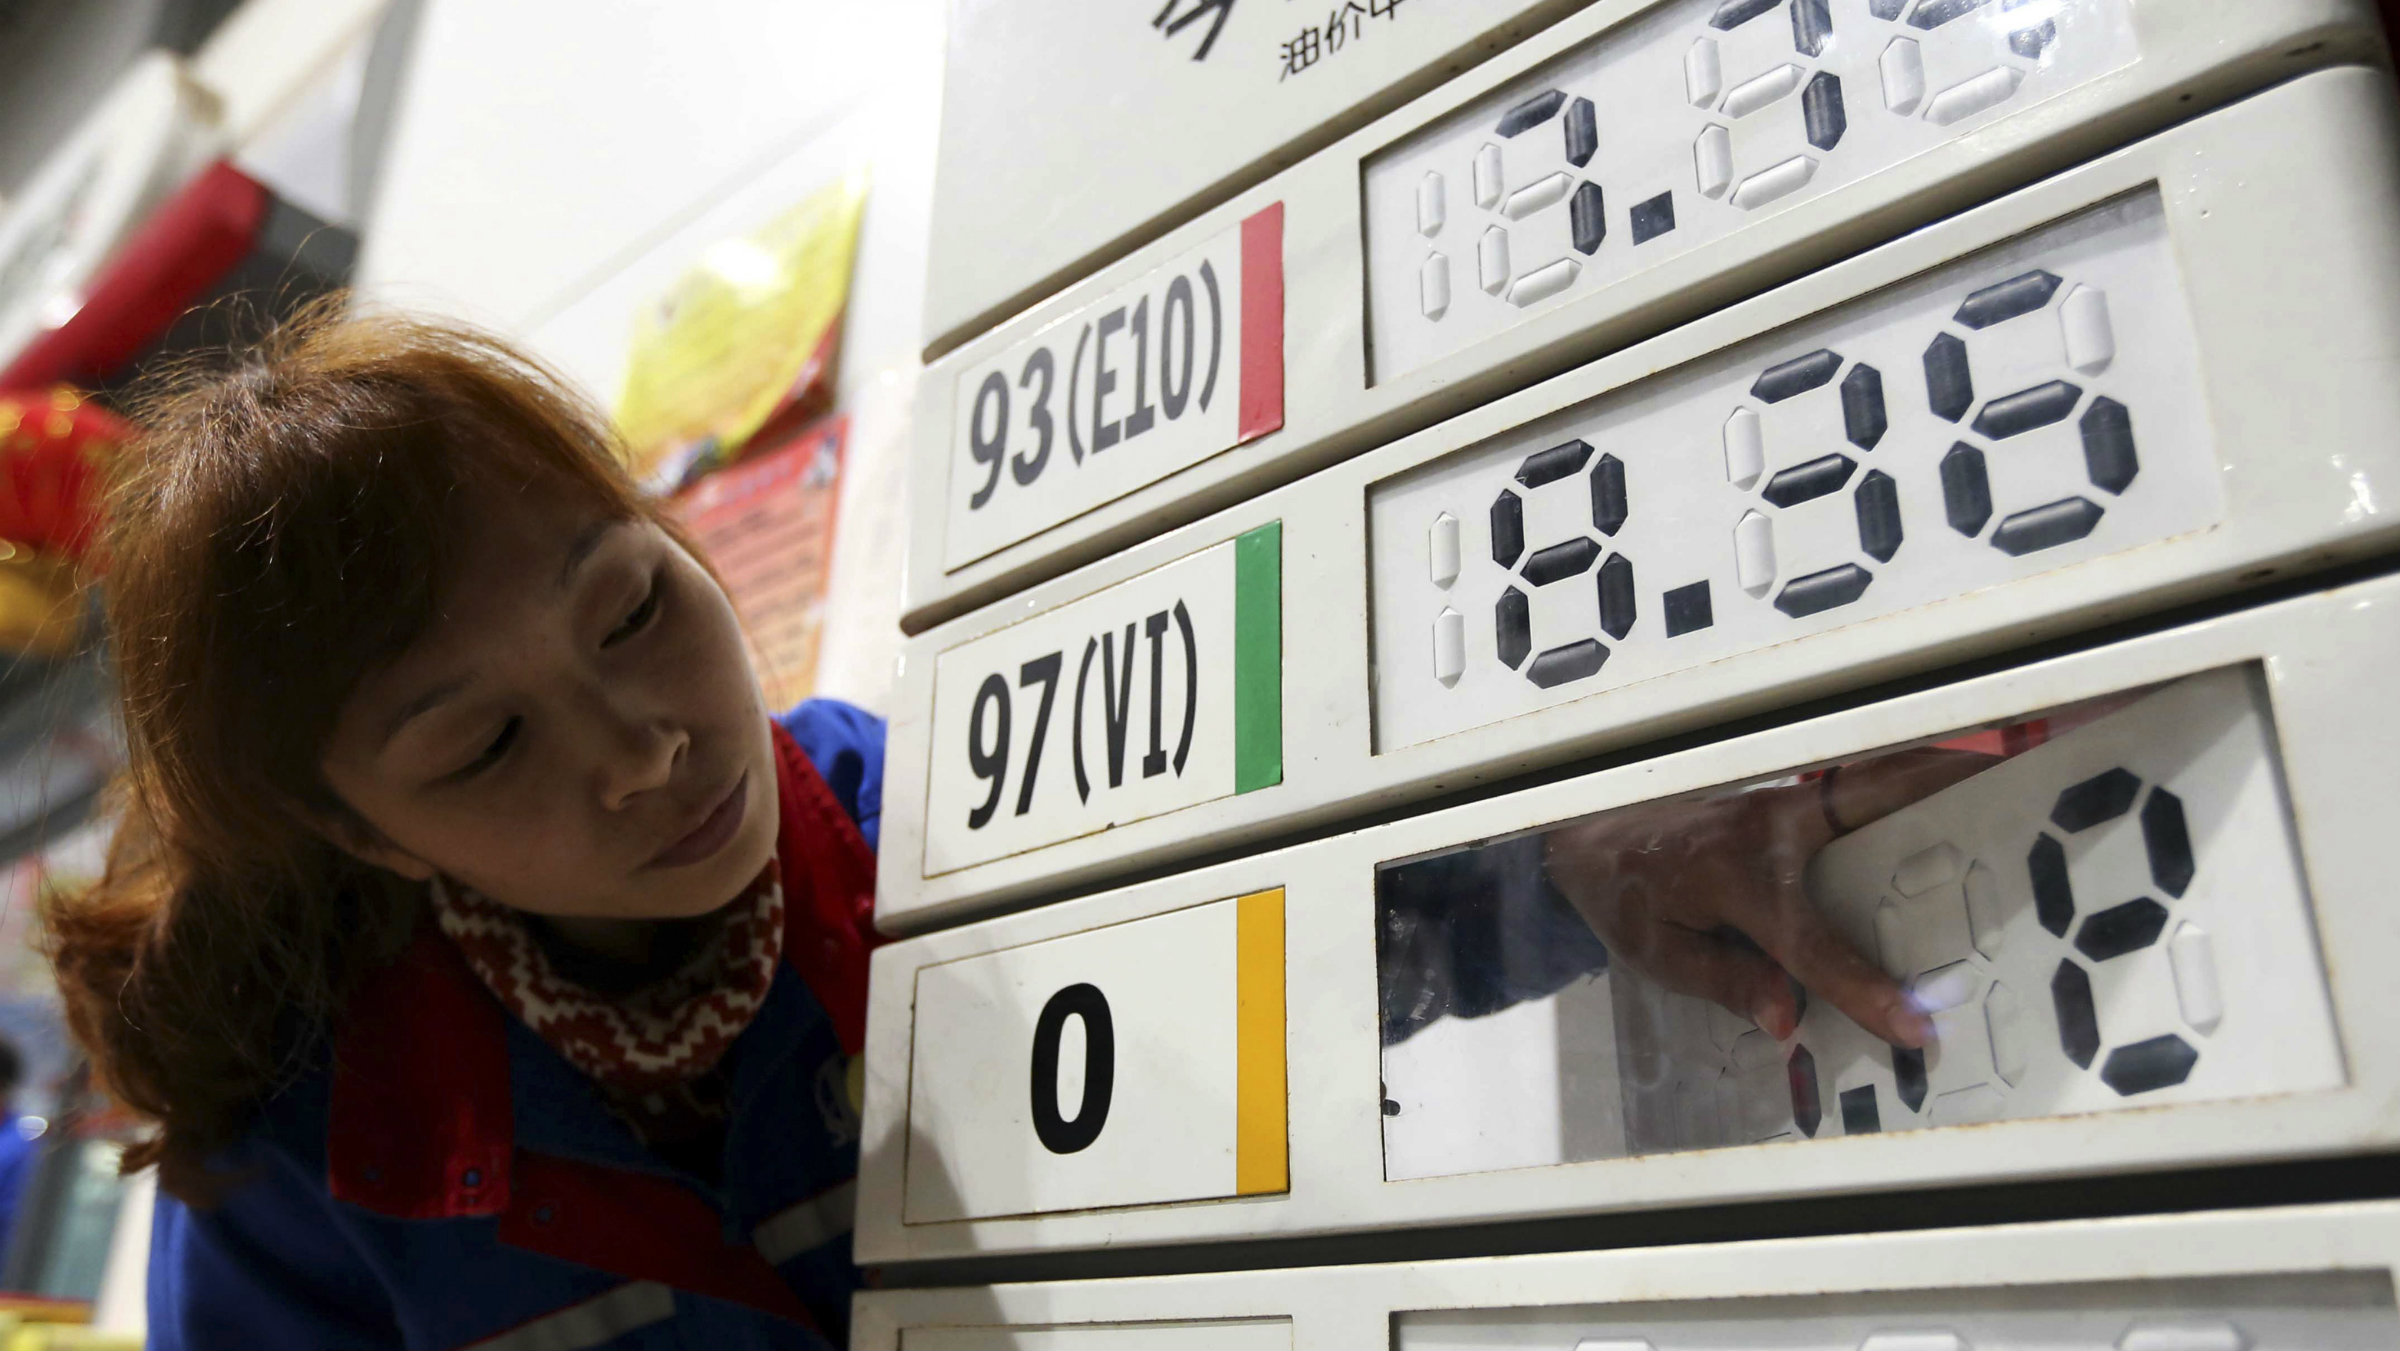 The diesel price is reduced at a gas station in Rongshui, China., in March 2014.